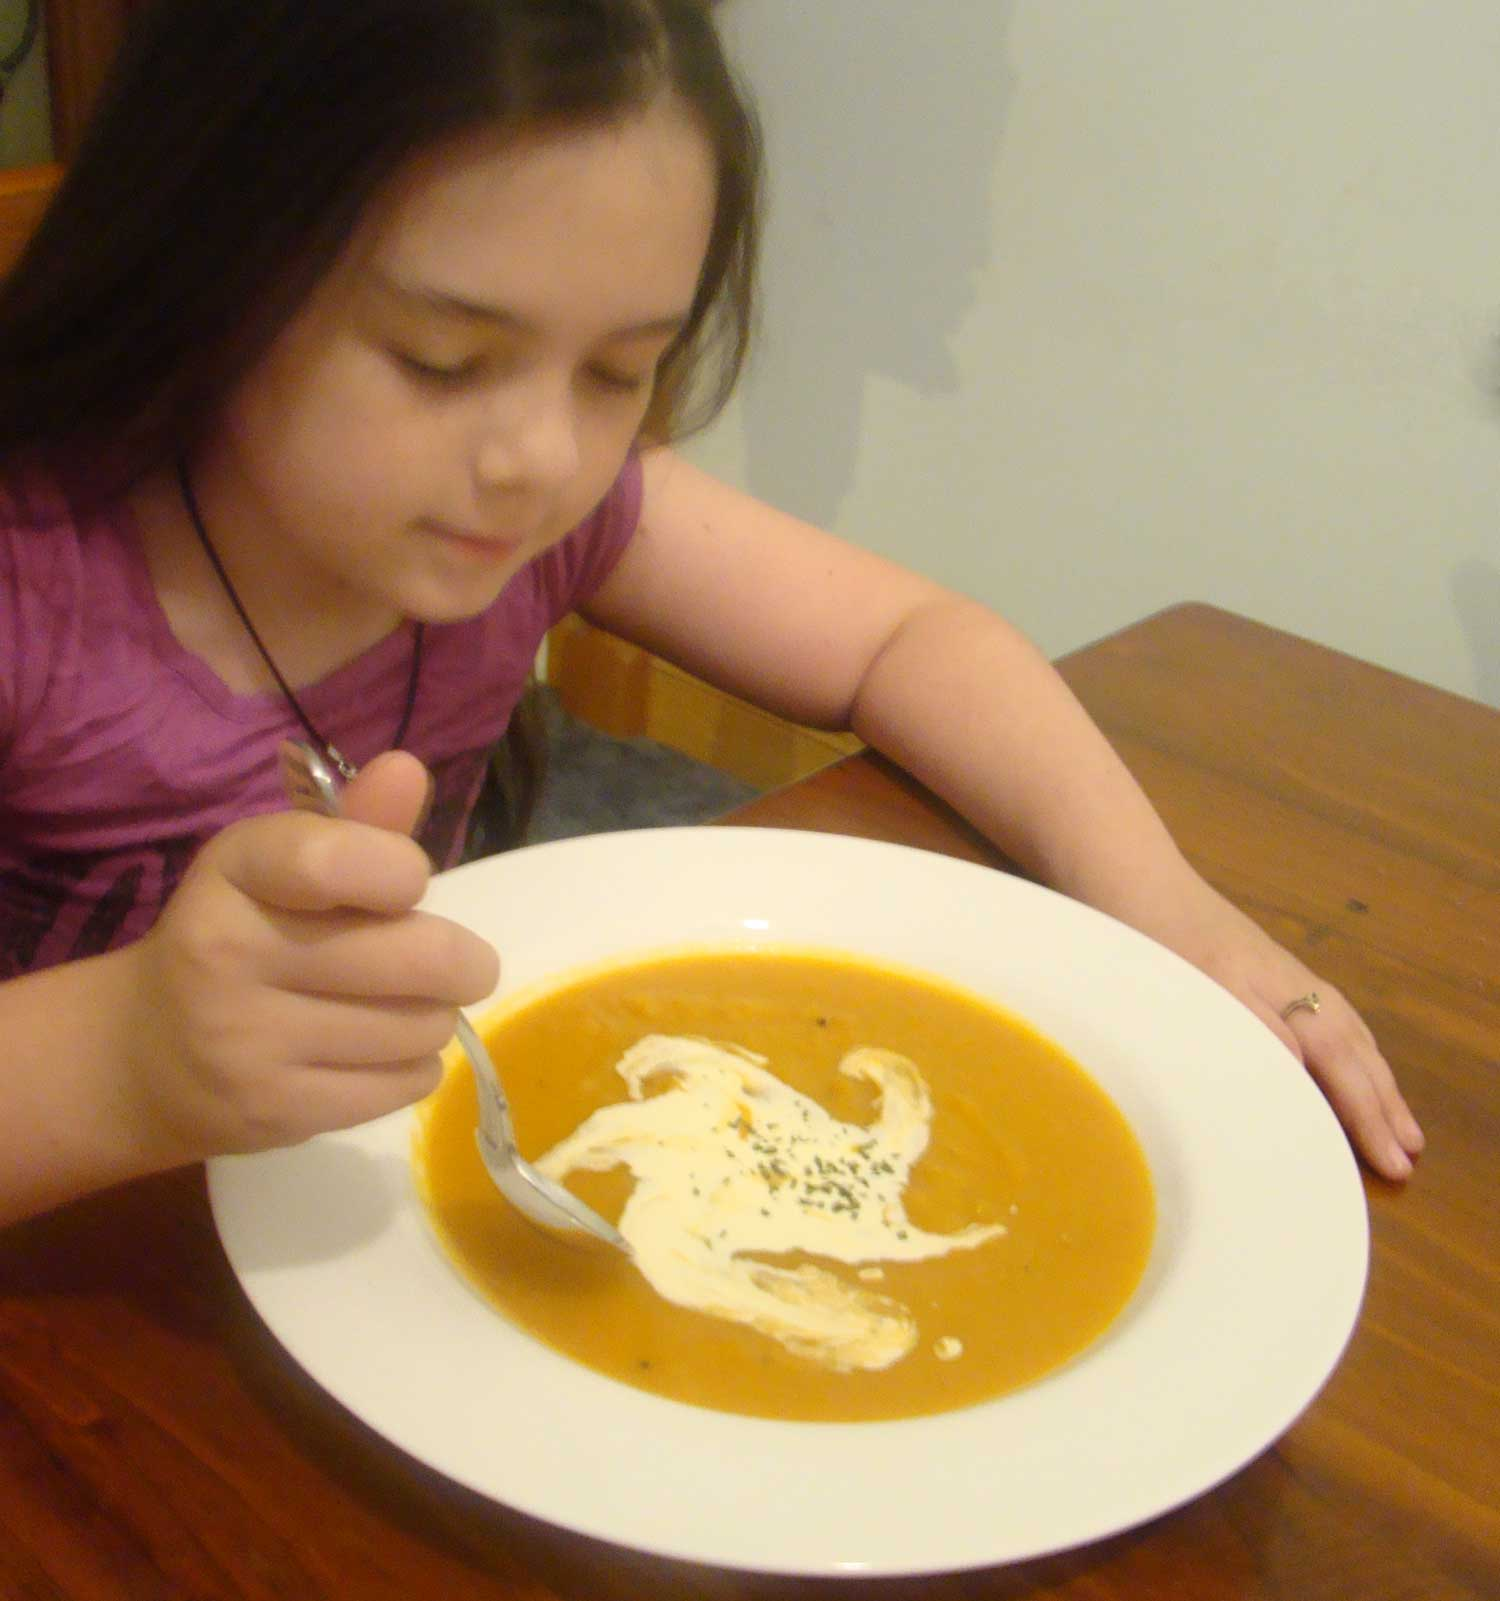 Tookii things to do with kids eating pumpkin soup one of the activities for kids